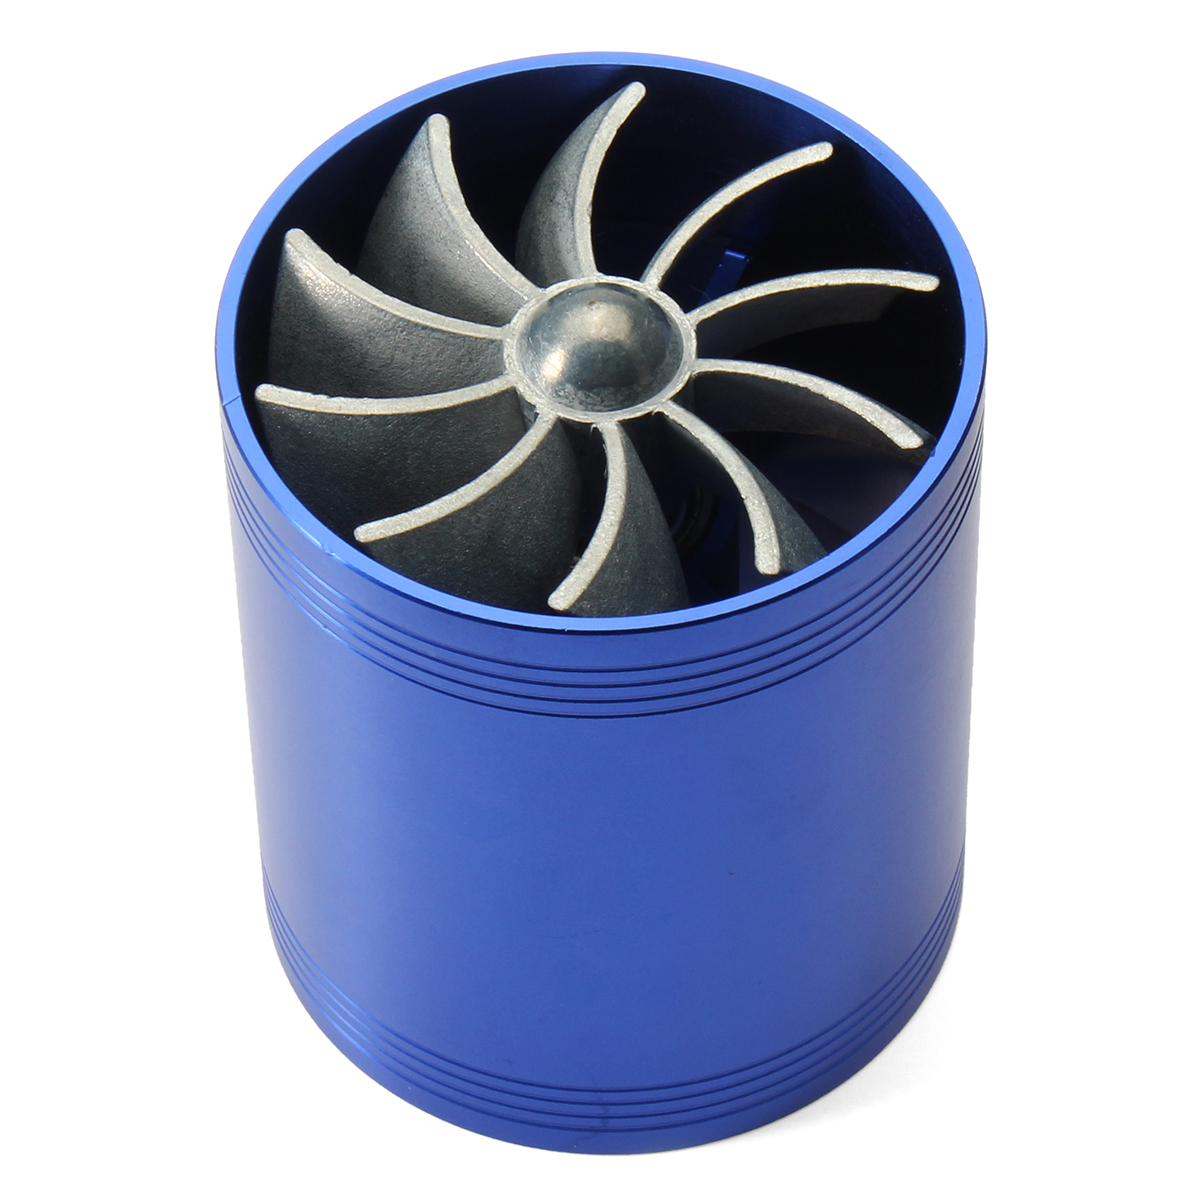 Blue Supercharger Power Air Intake Turbonator Dual Fan Turbine Gas Saver Turbo